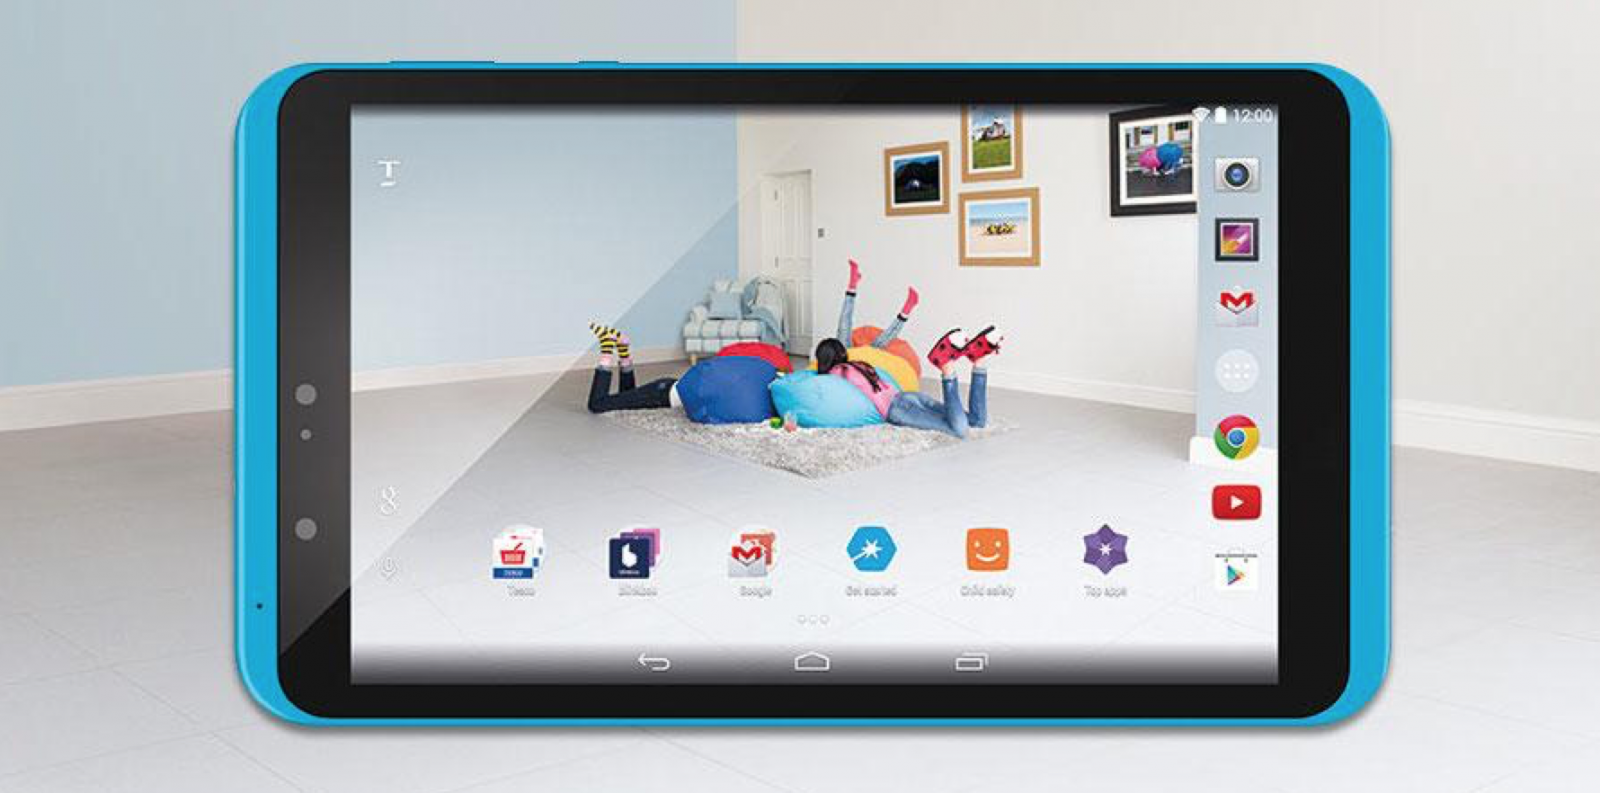 Hudl 2 Android Tablet from Tesco